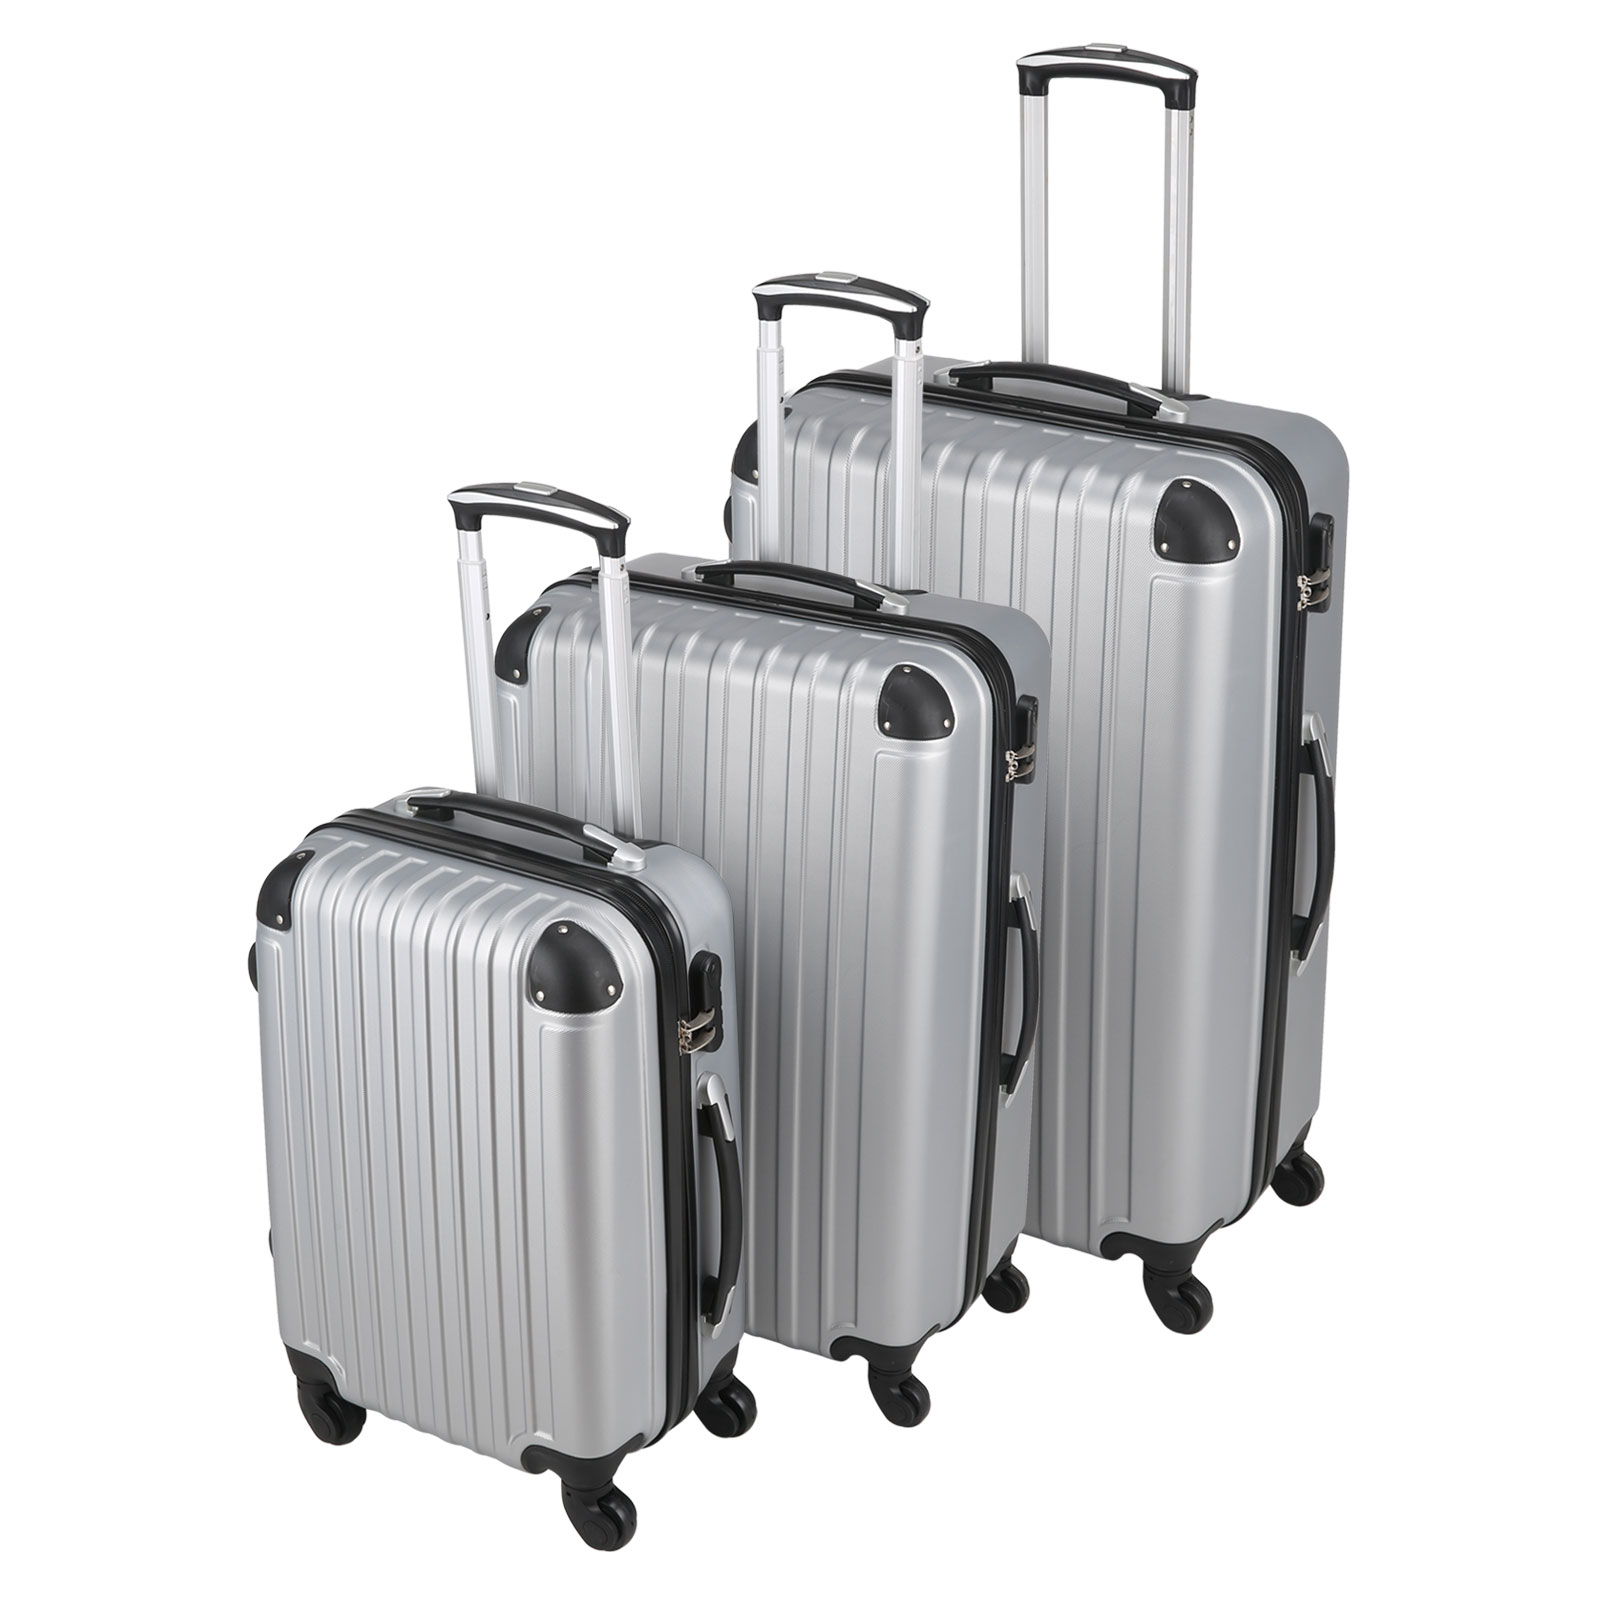 3 pcs luggage suitcase set hard shell silver cabin bags trolley 4 wheels travel ebay. Black Bedroom Furniture Sets. Home Design Ideas